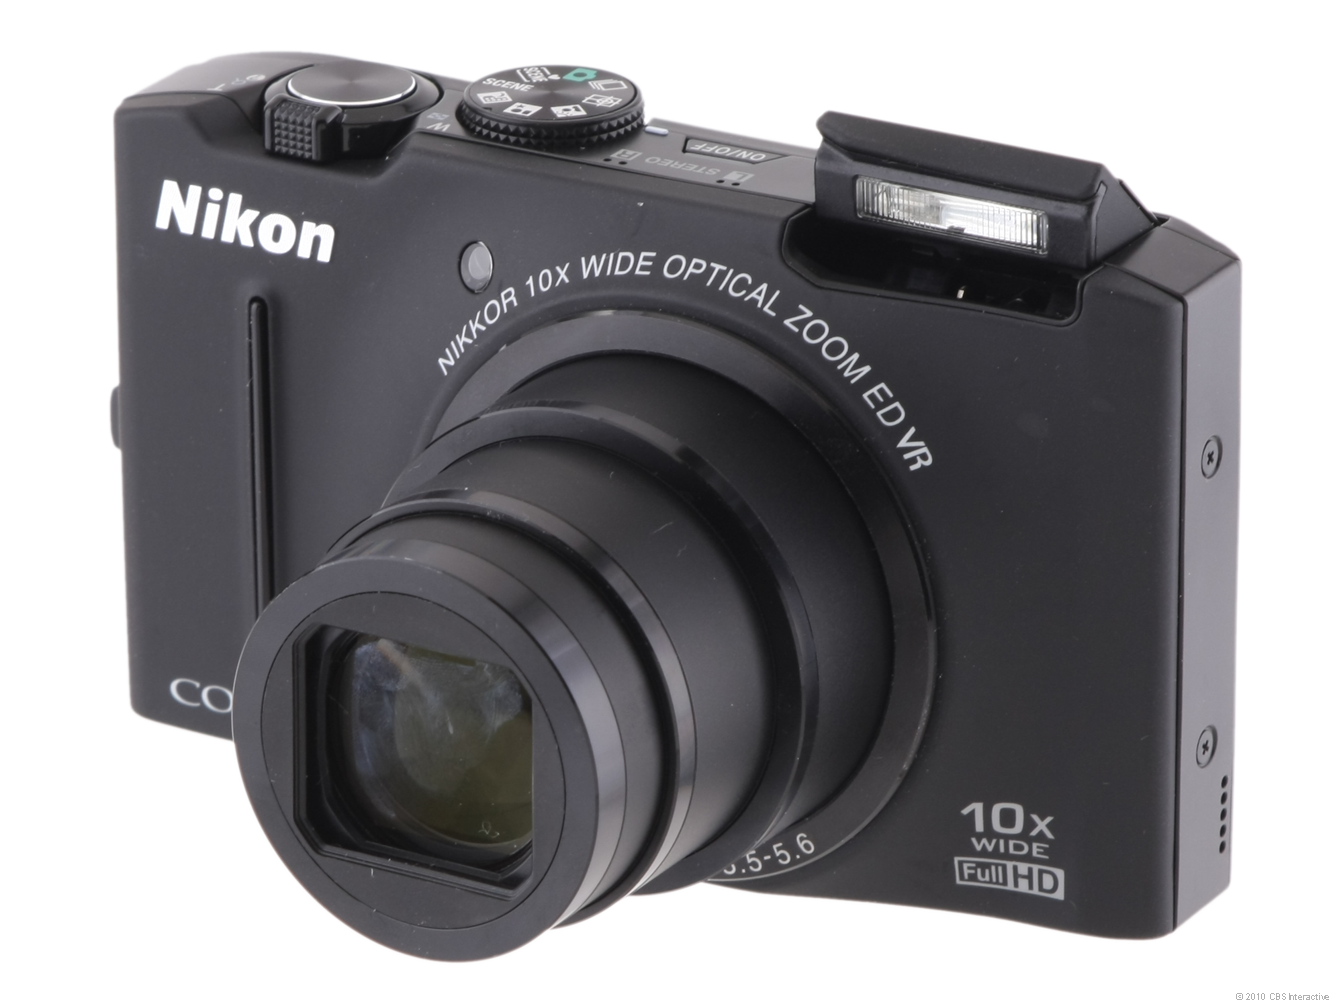 Nikon Coolpix S8100 (Black)